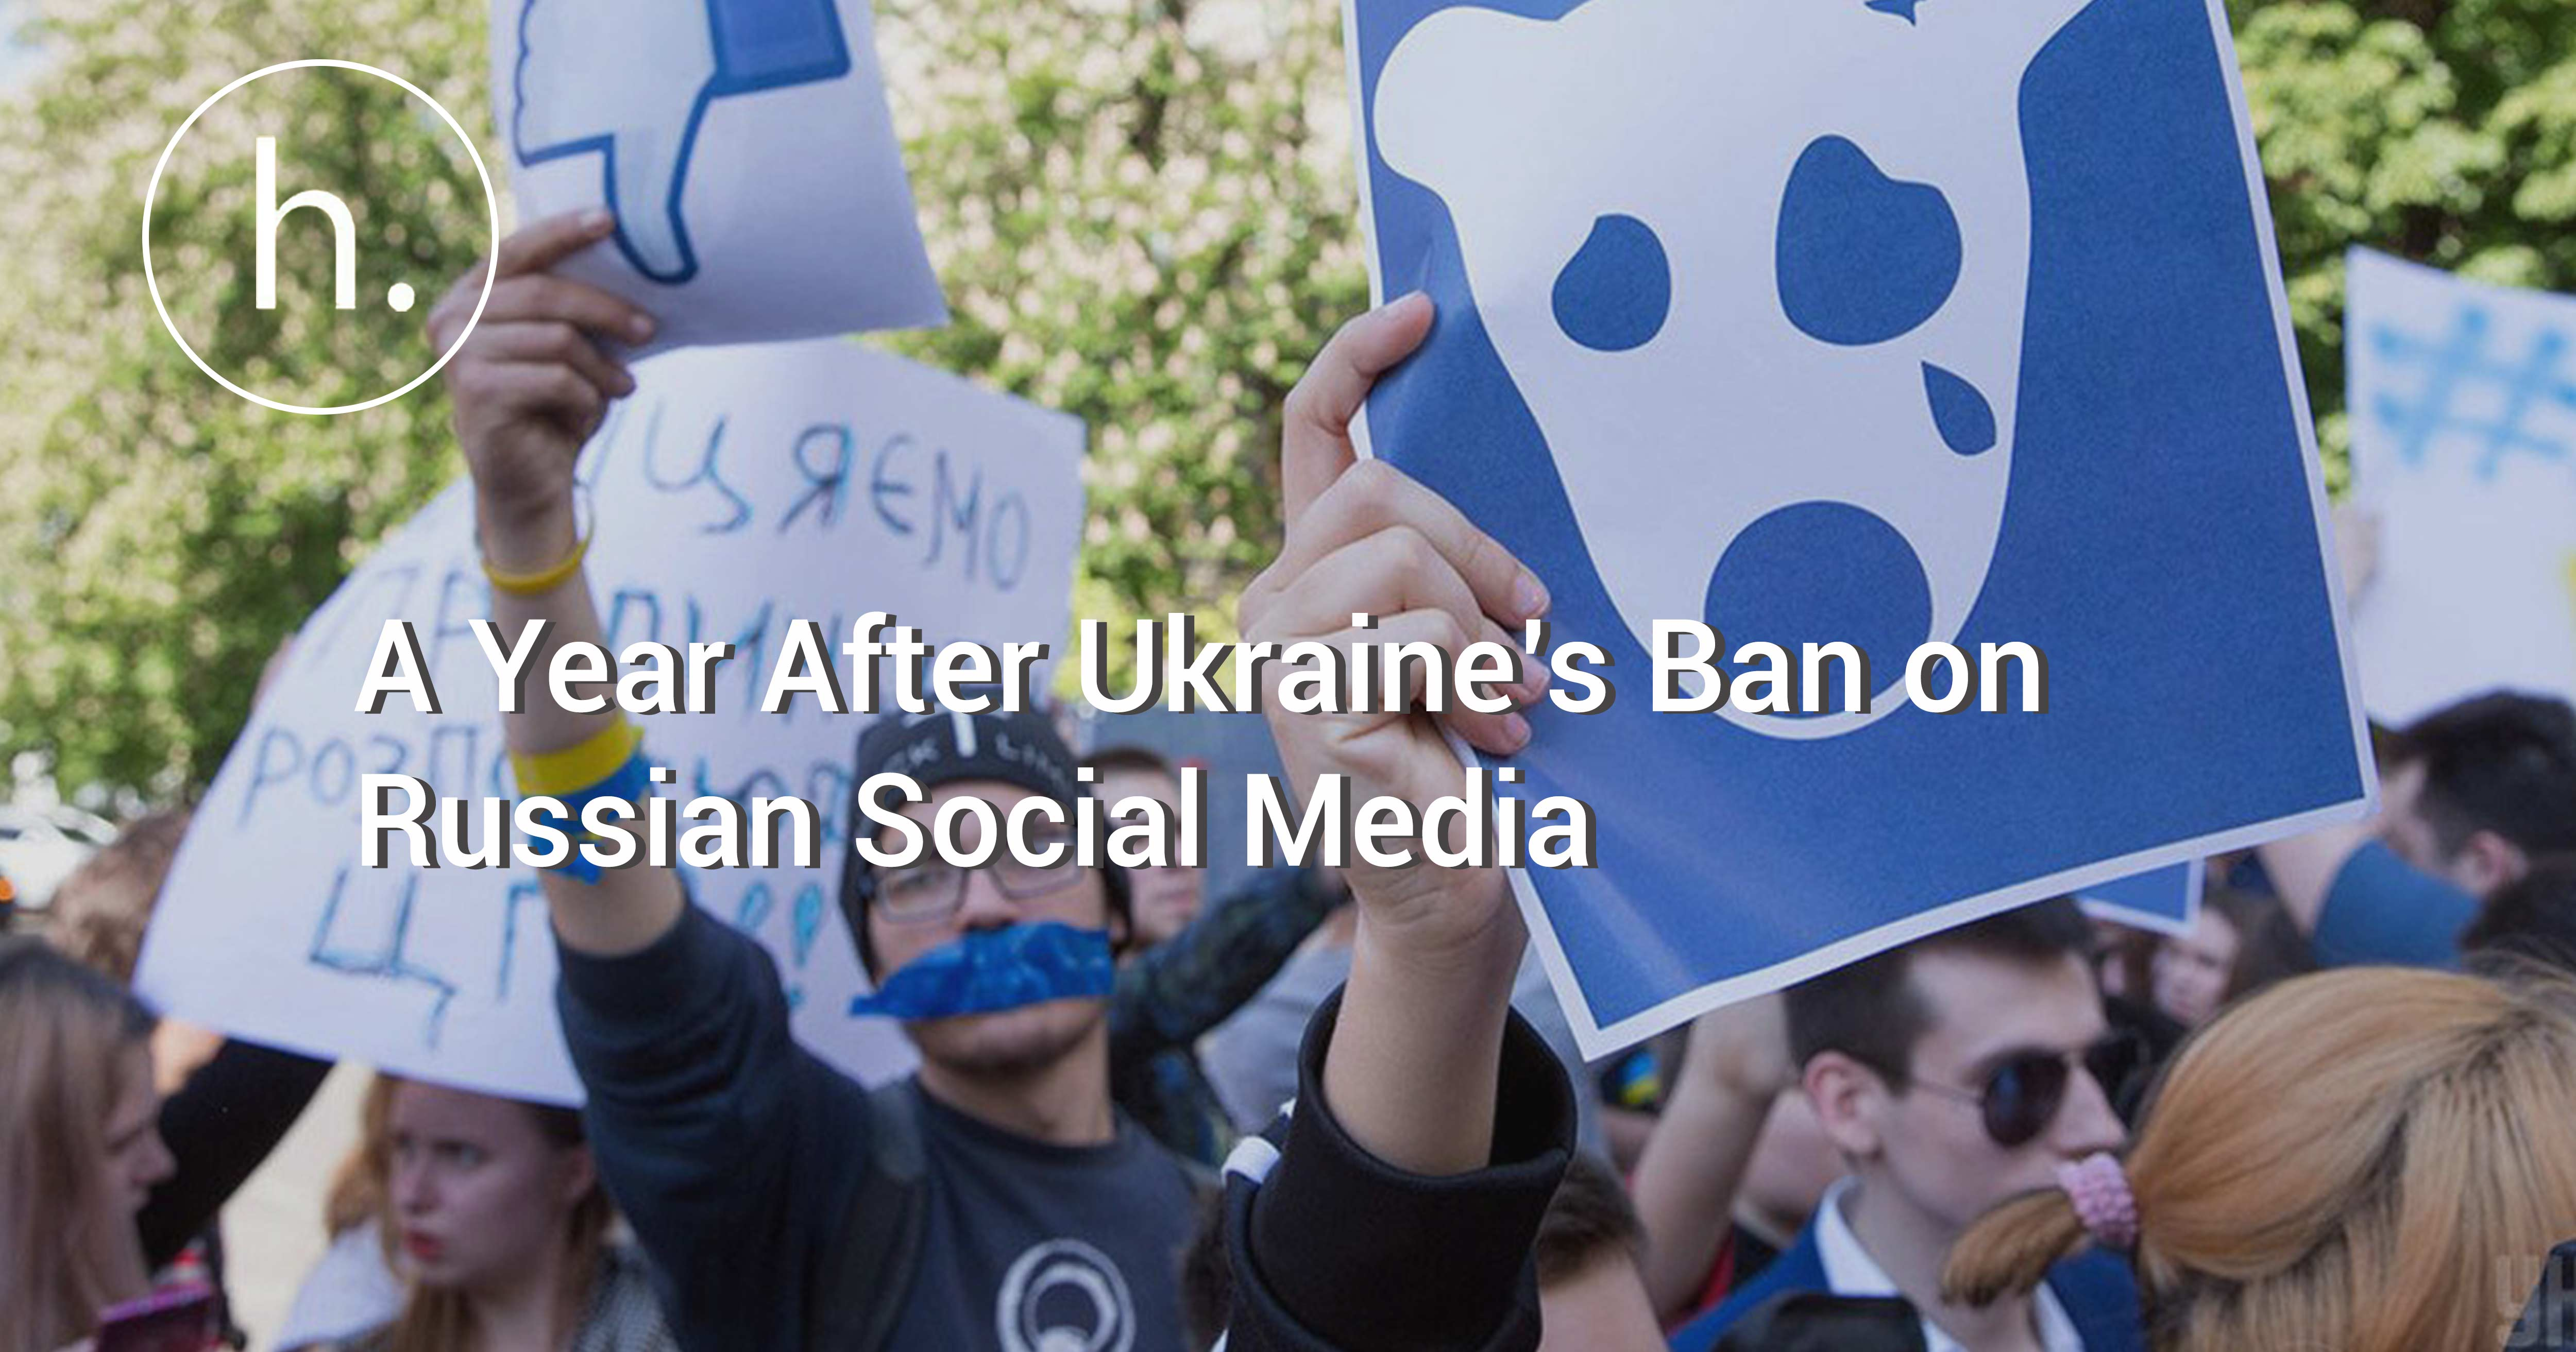 A Year After Ukraine's Ban on Russian Social Media: What's